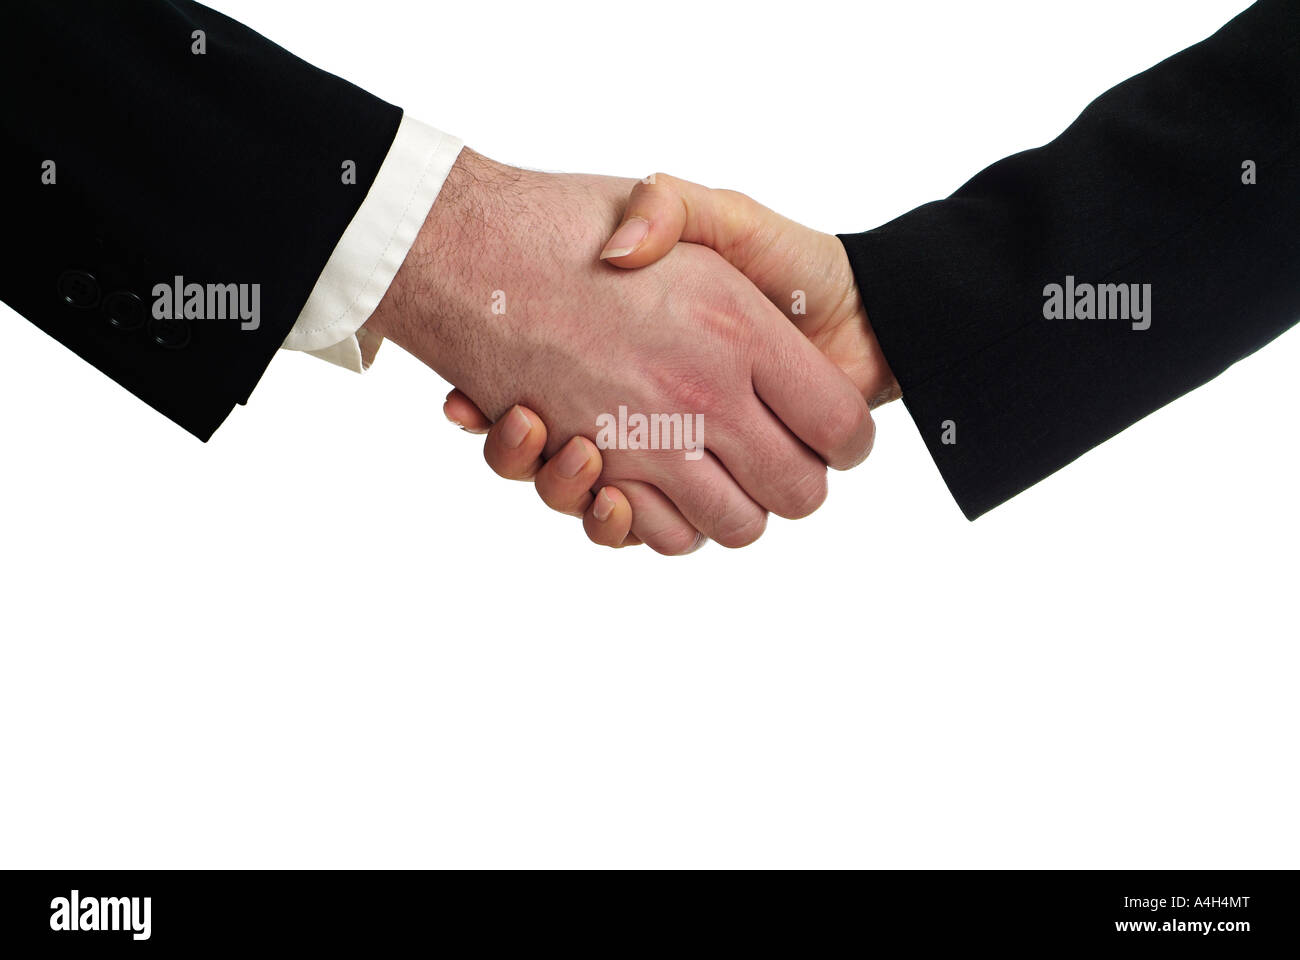 Male and Female Business People Shaking Hands Against a White Background Close Up Cut Out - Stock Image